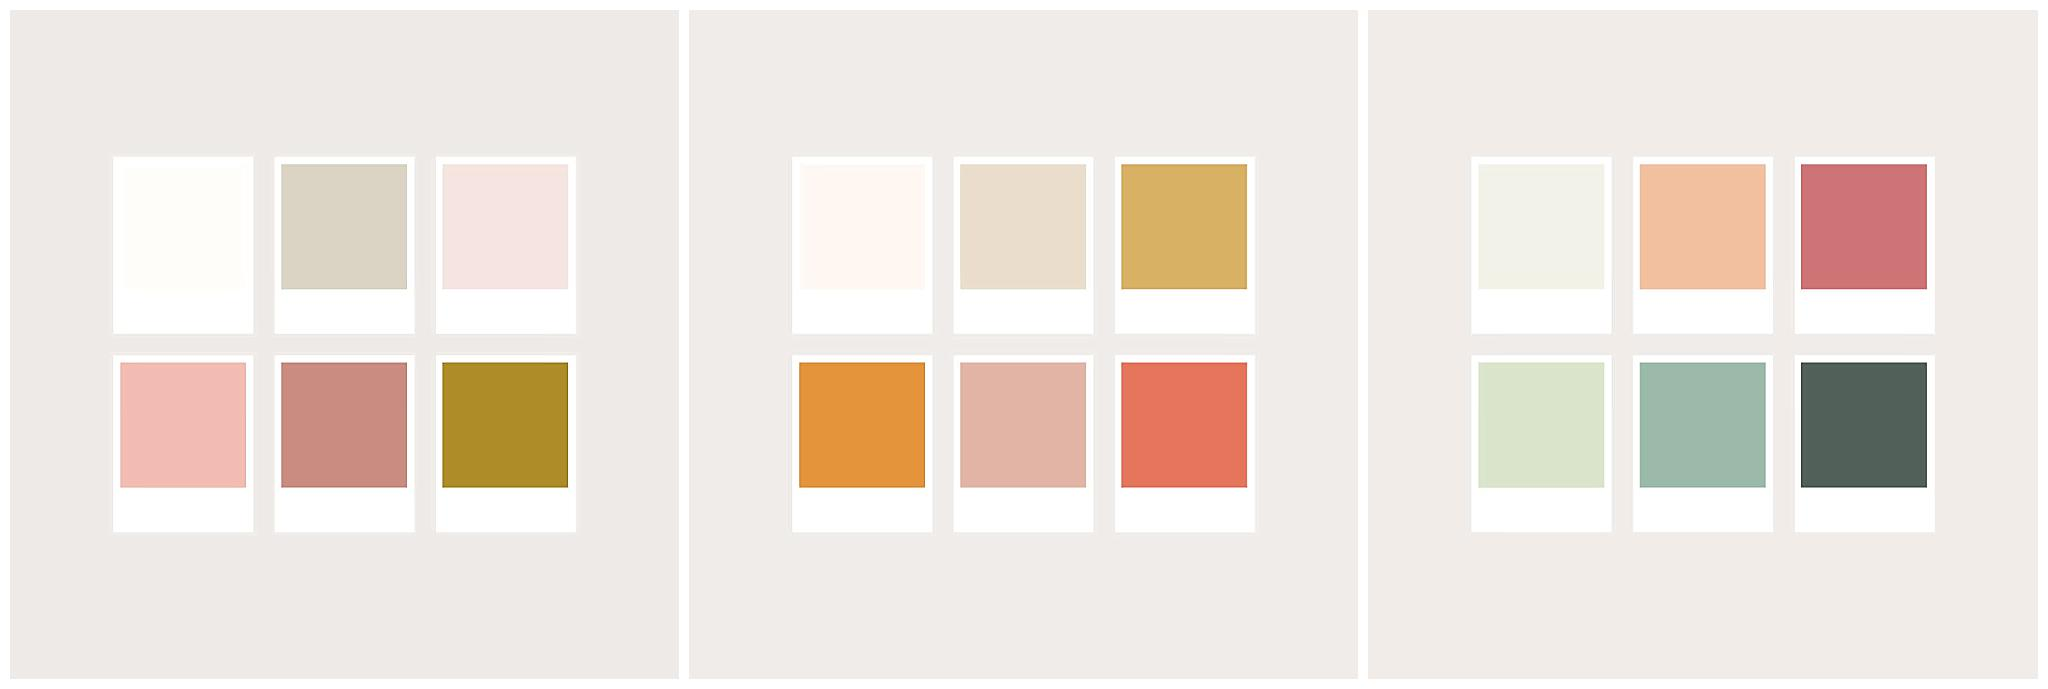 color schemes for family photography